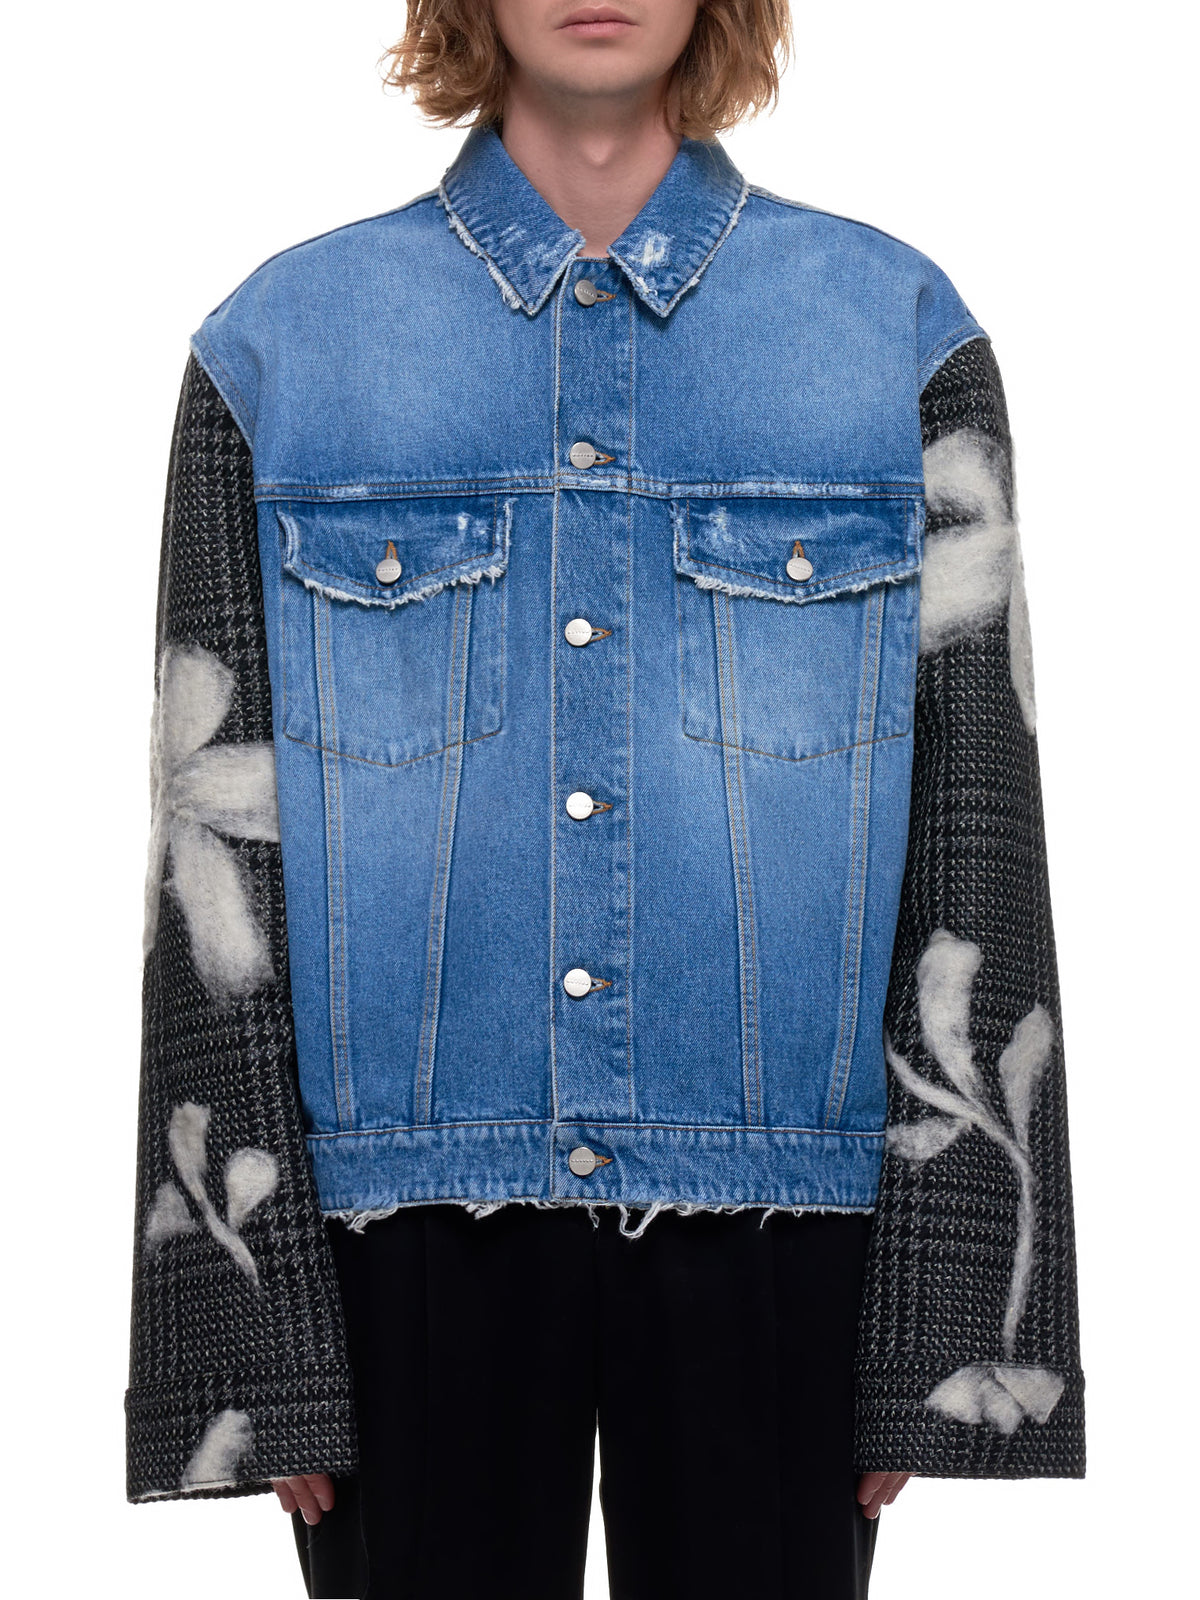 Botter Denim Jacket | H.Lorenzo Front